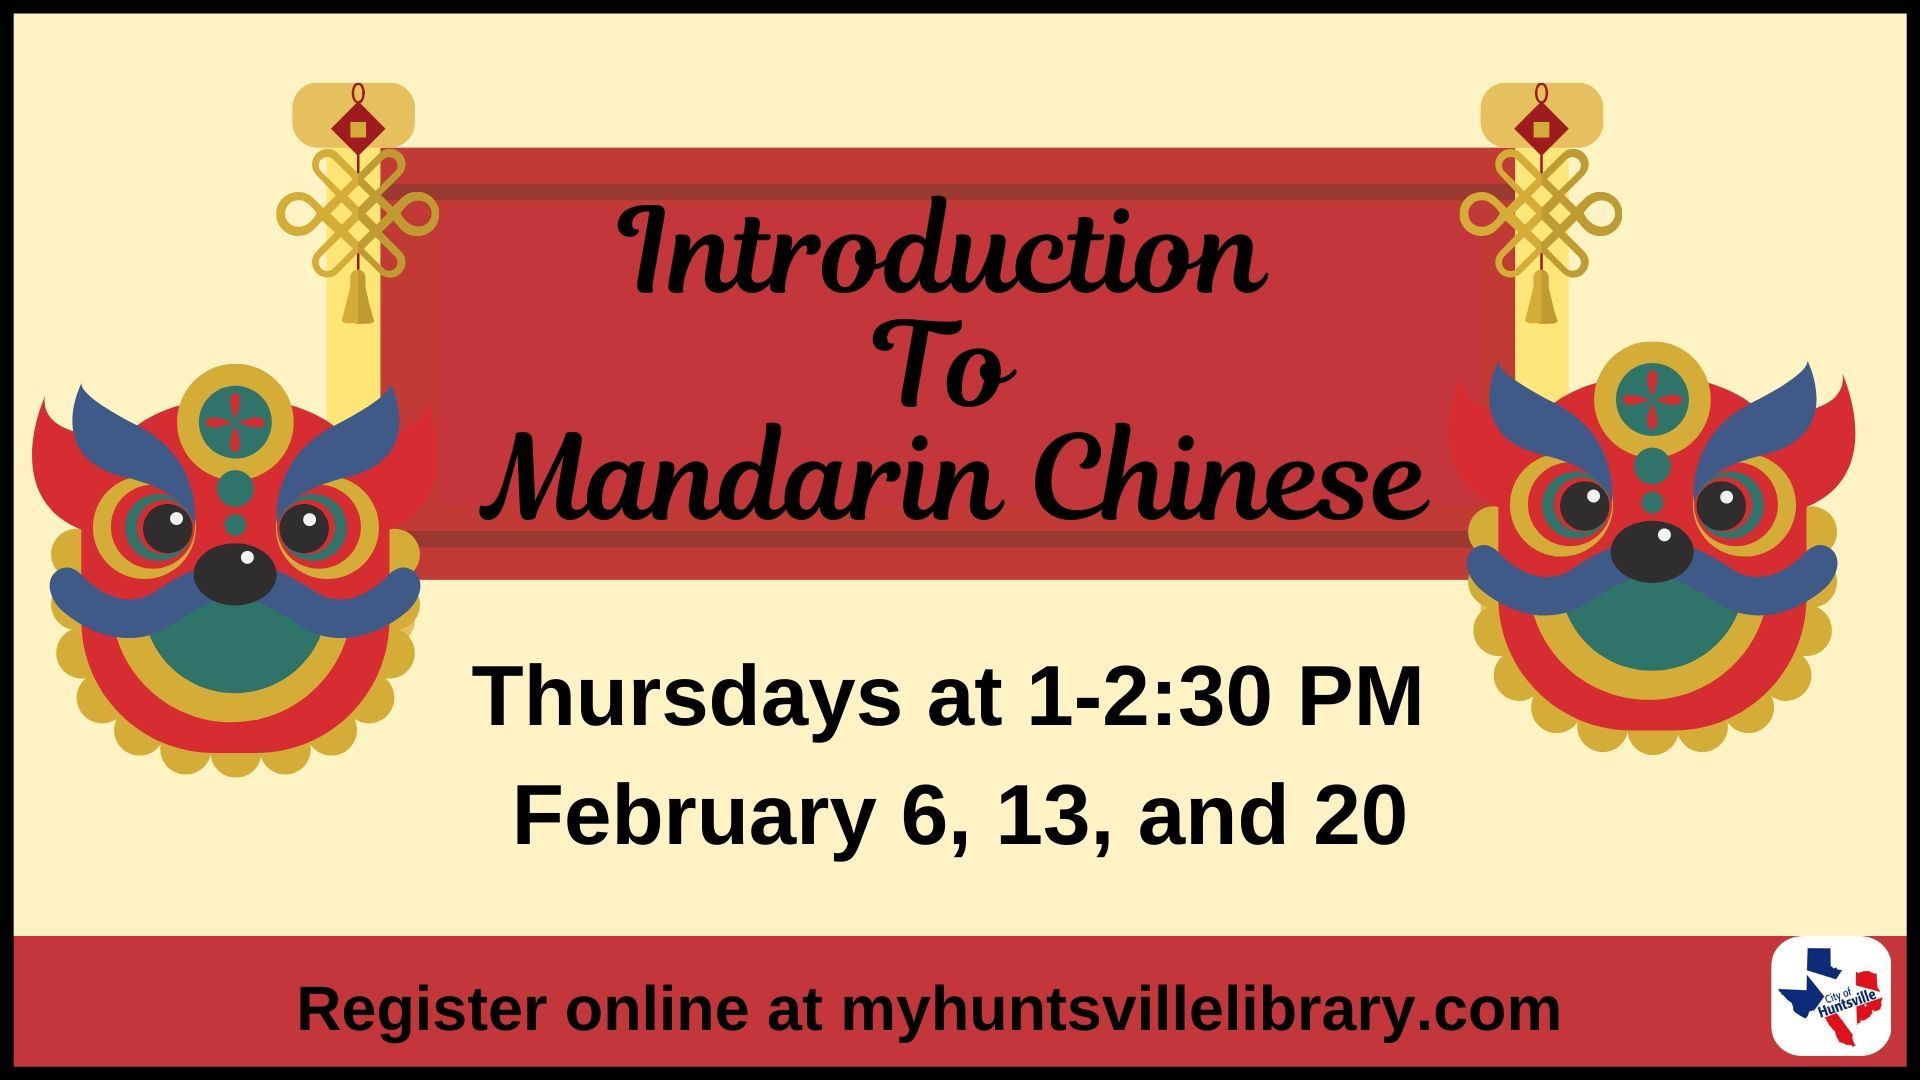 Introduction to Mandarin Chinese 02-20